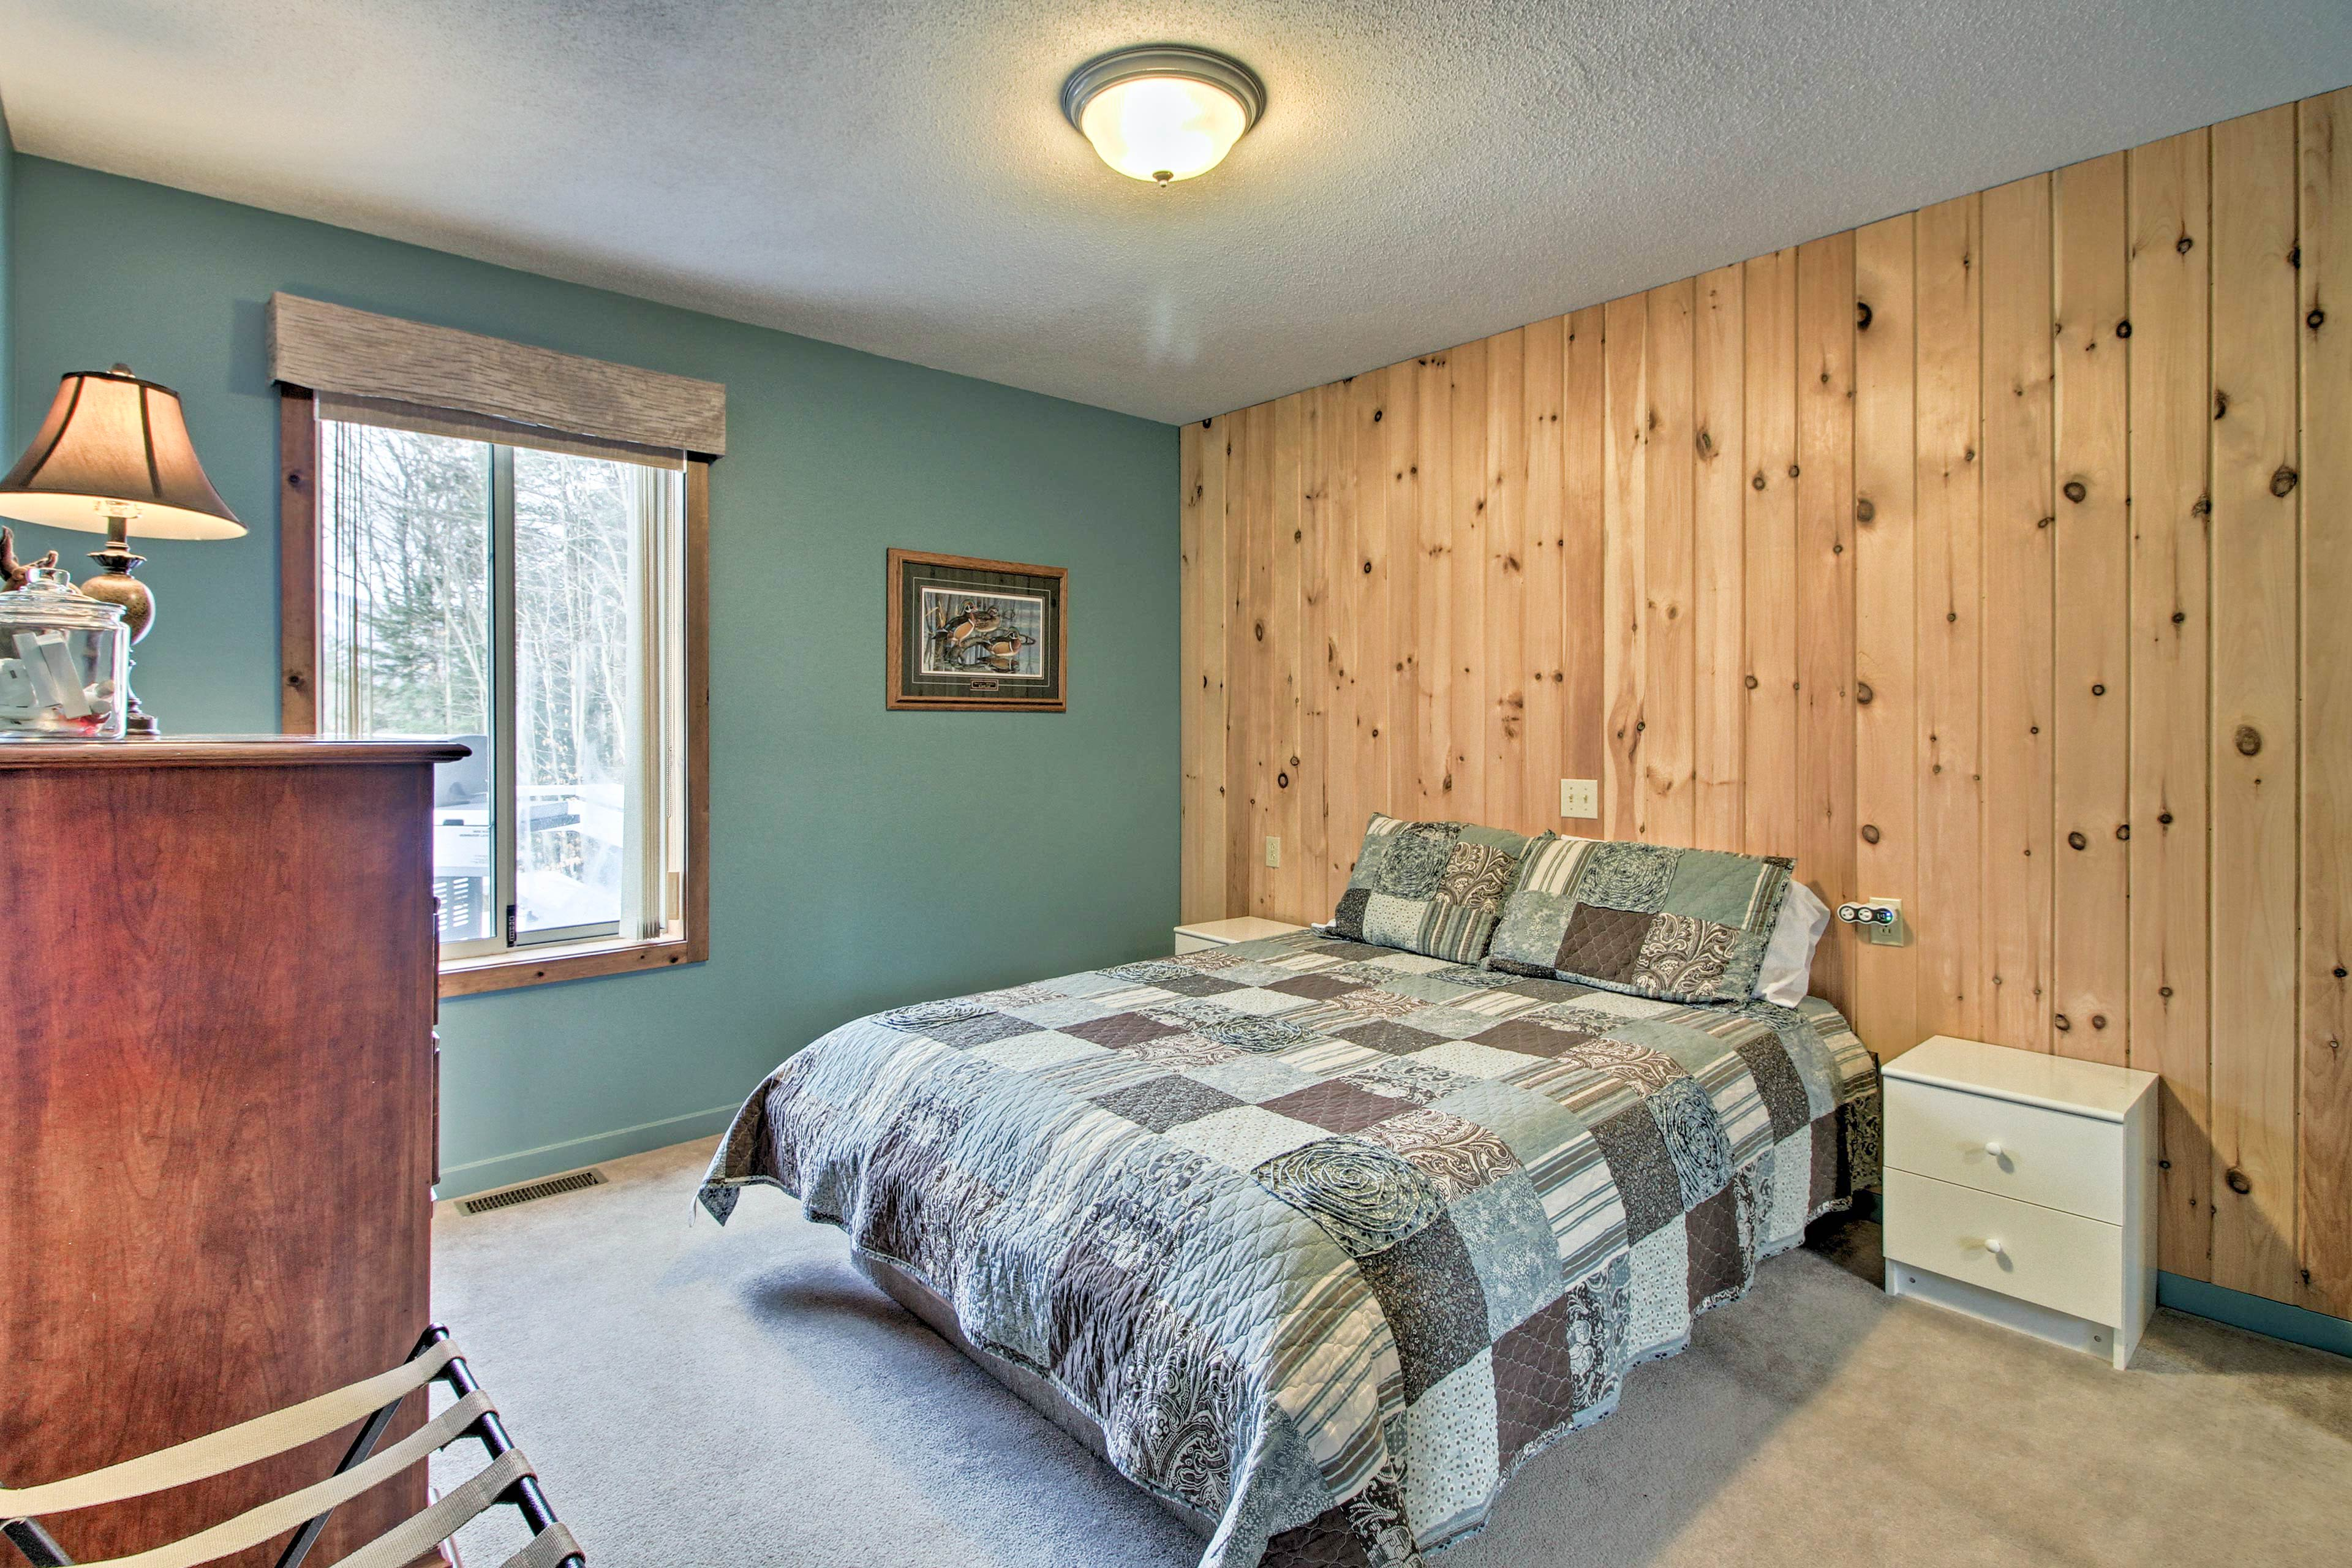 Sleep soundly in this queen bed.